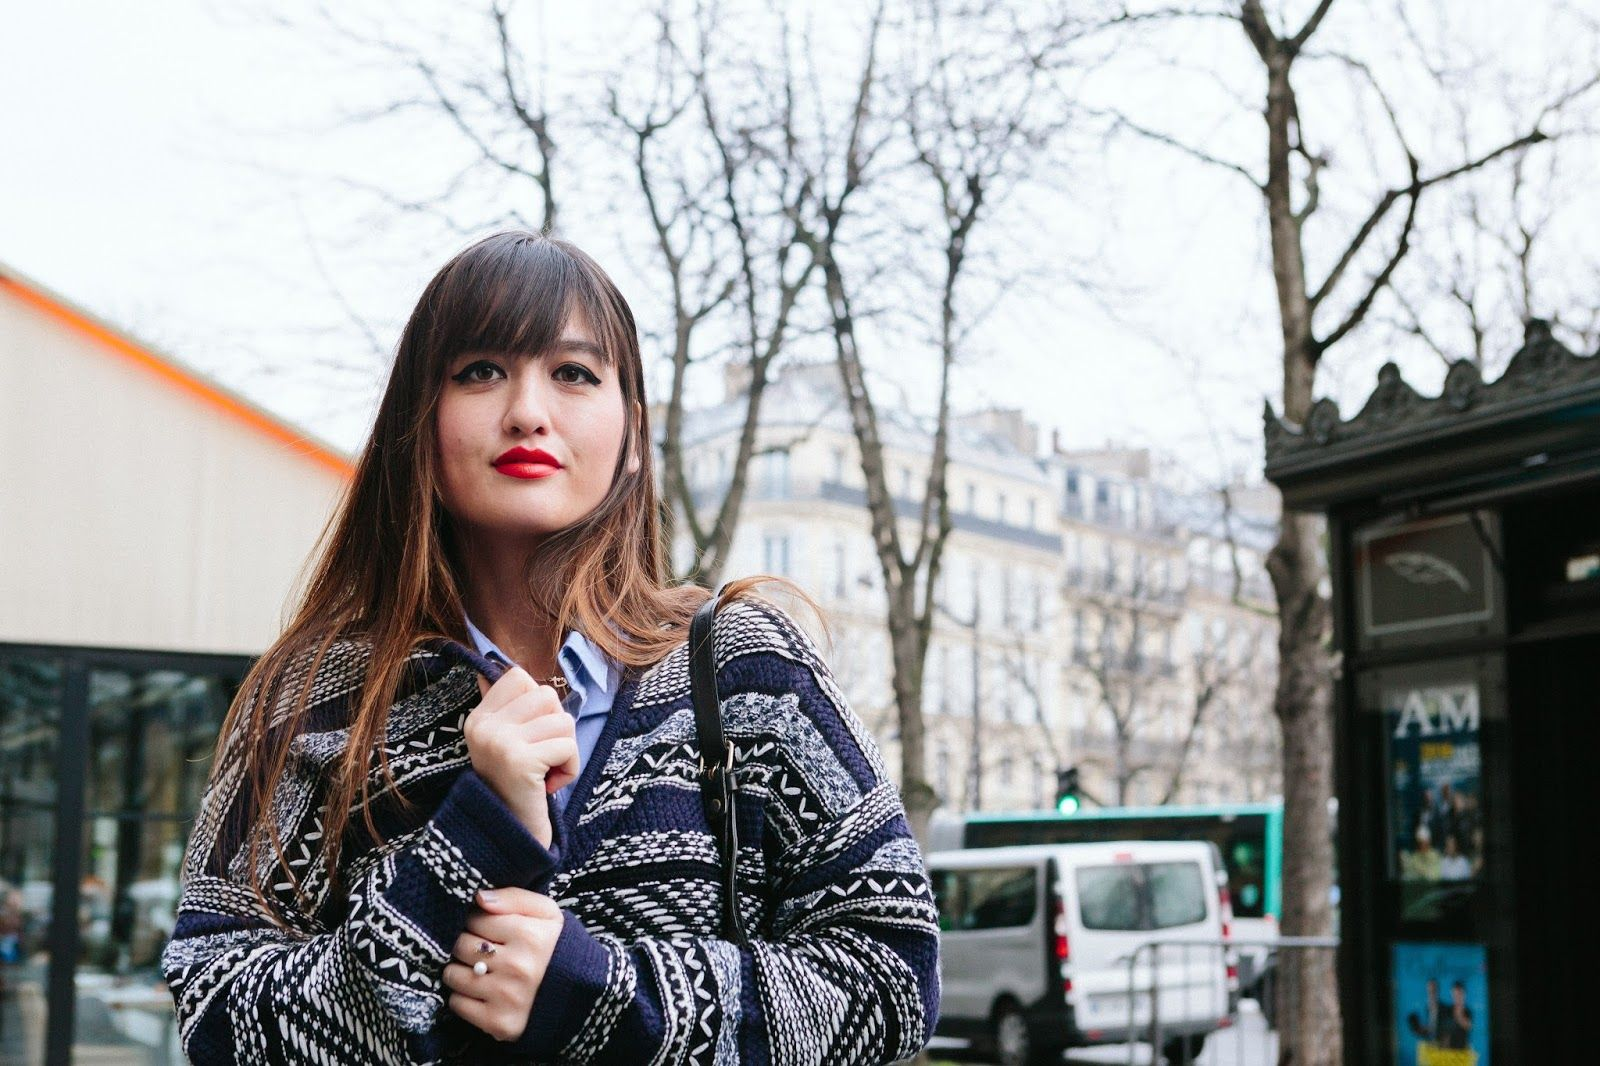 meet me in paree, blogger, fashion, look, style, chic parisian style, look of the day